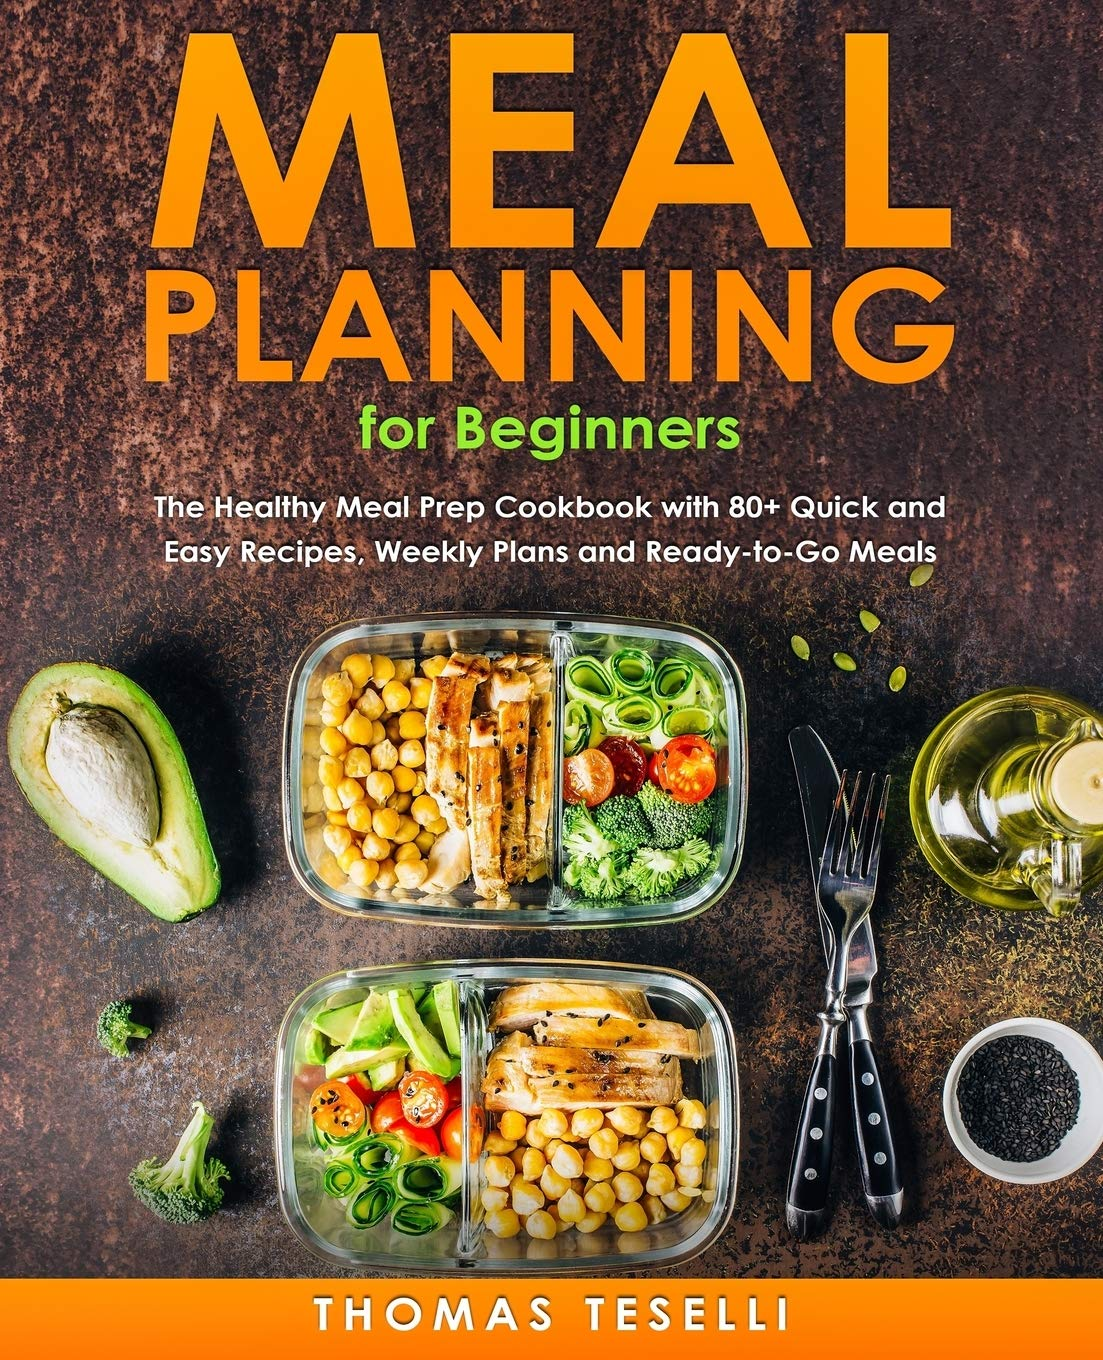 Meal Planning For Beginners The Healthy Meal Prep Cookbook With 80 Quick And Easy Recipes Weekly Plans And Ready To Go Meals Teselli Thomas 9781086593402 Amazon Com Books